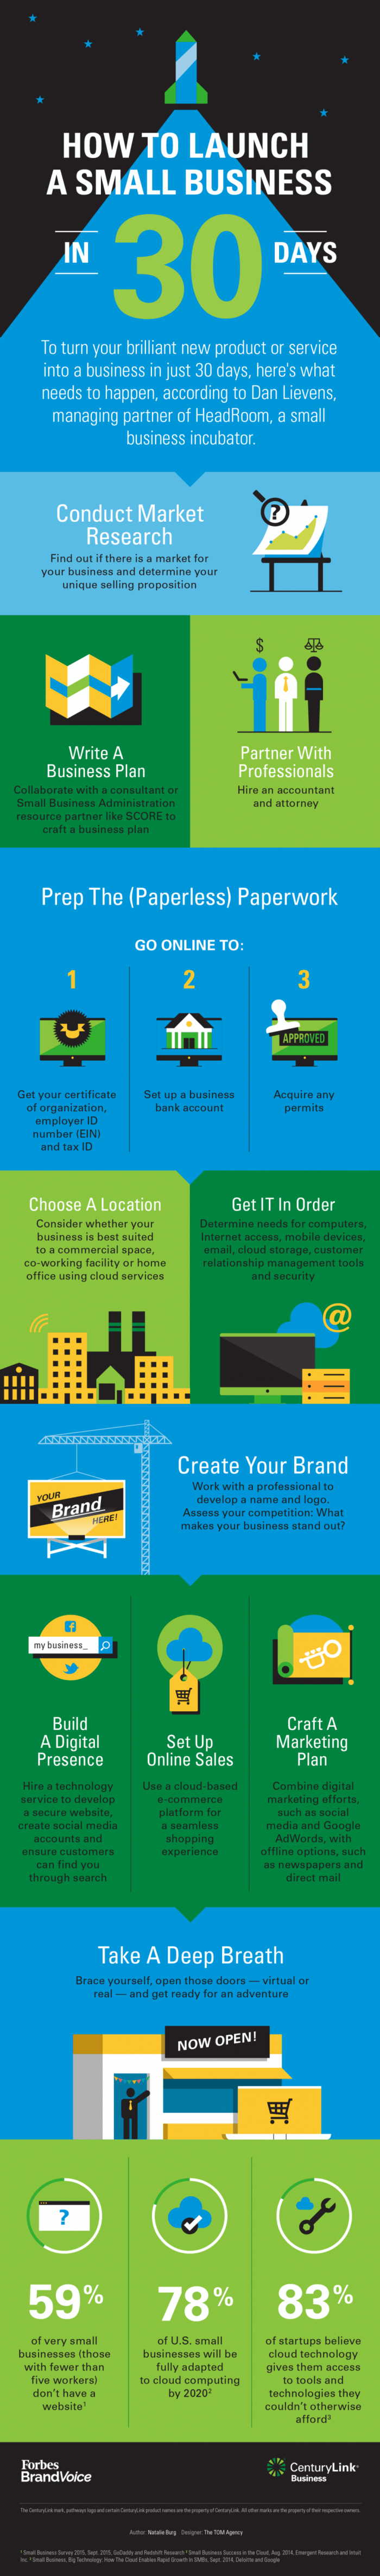 infographic describes how to launch a business in 30 days